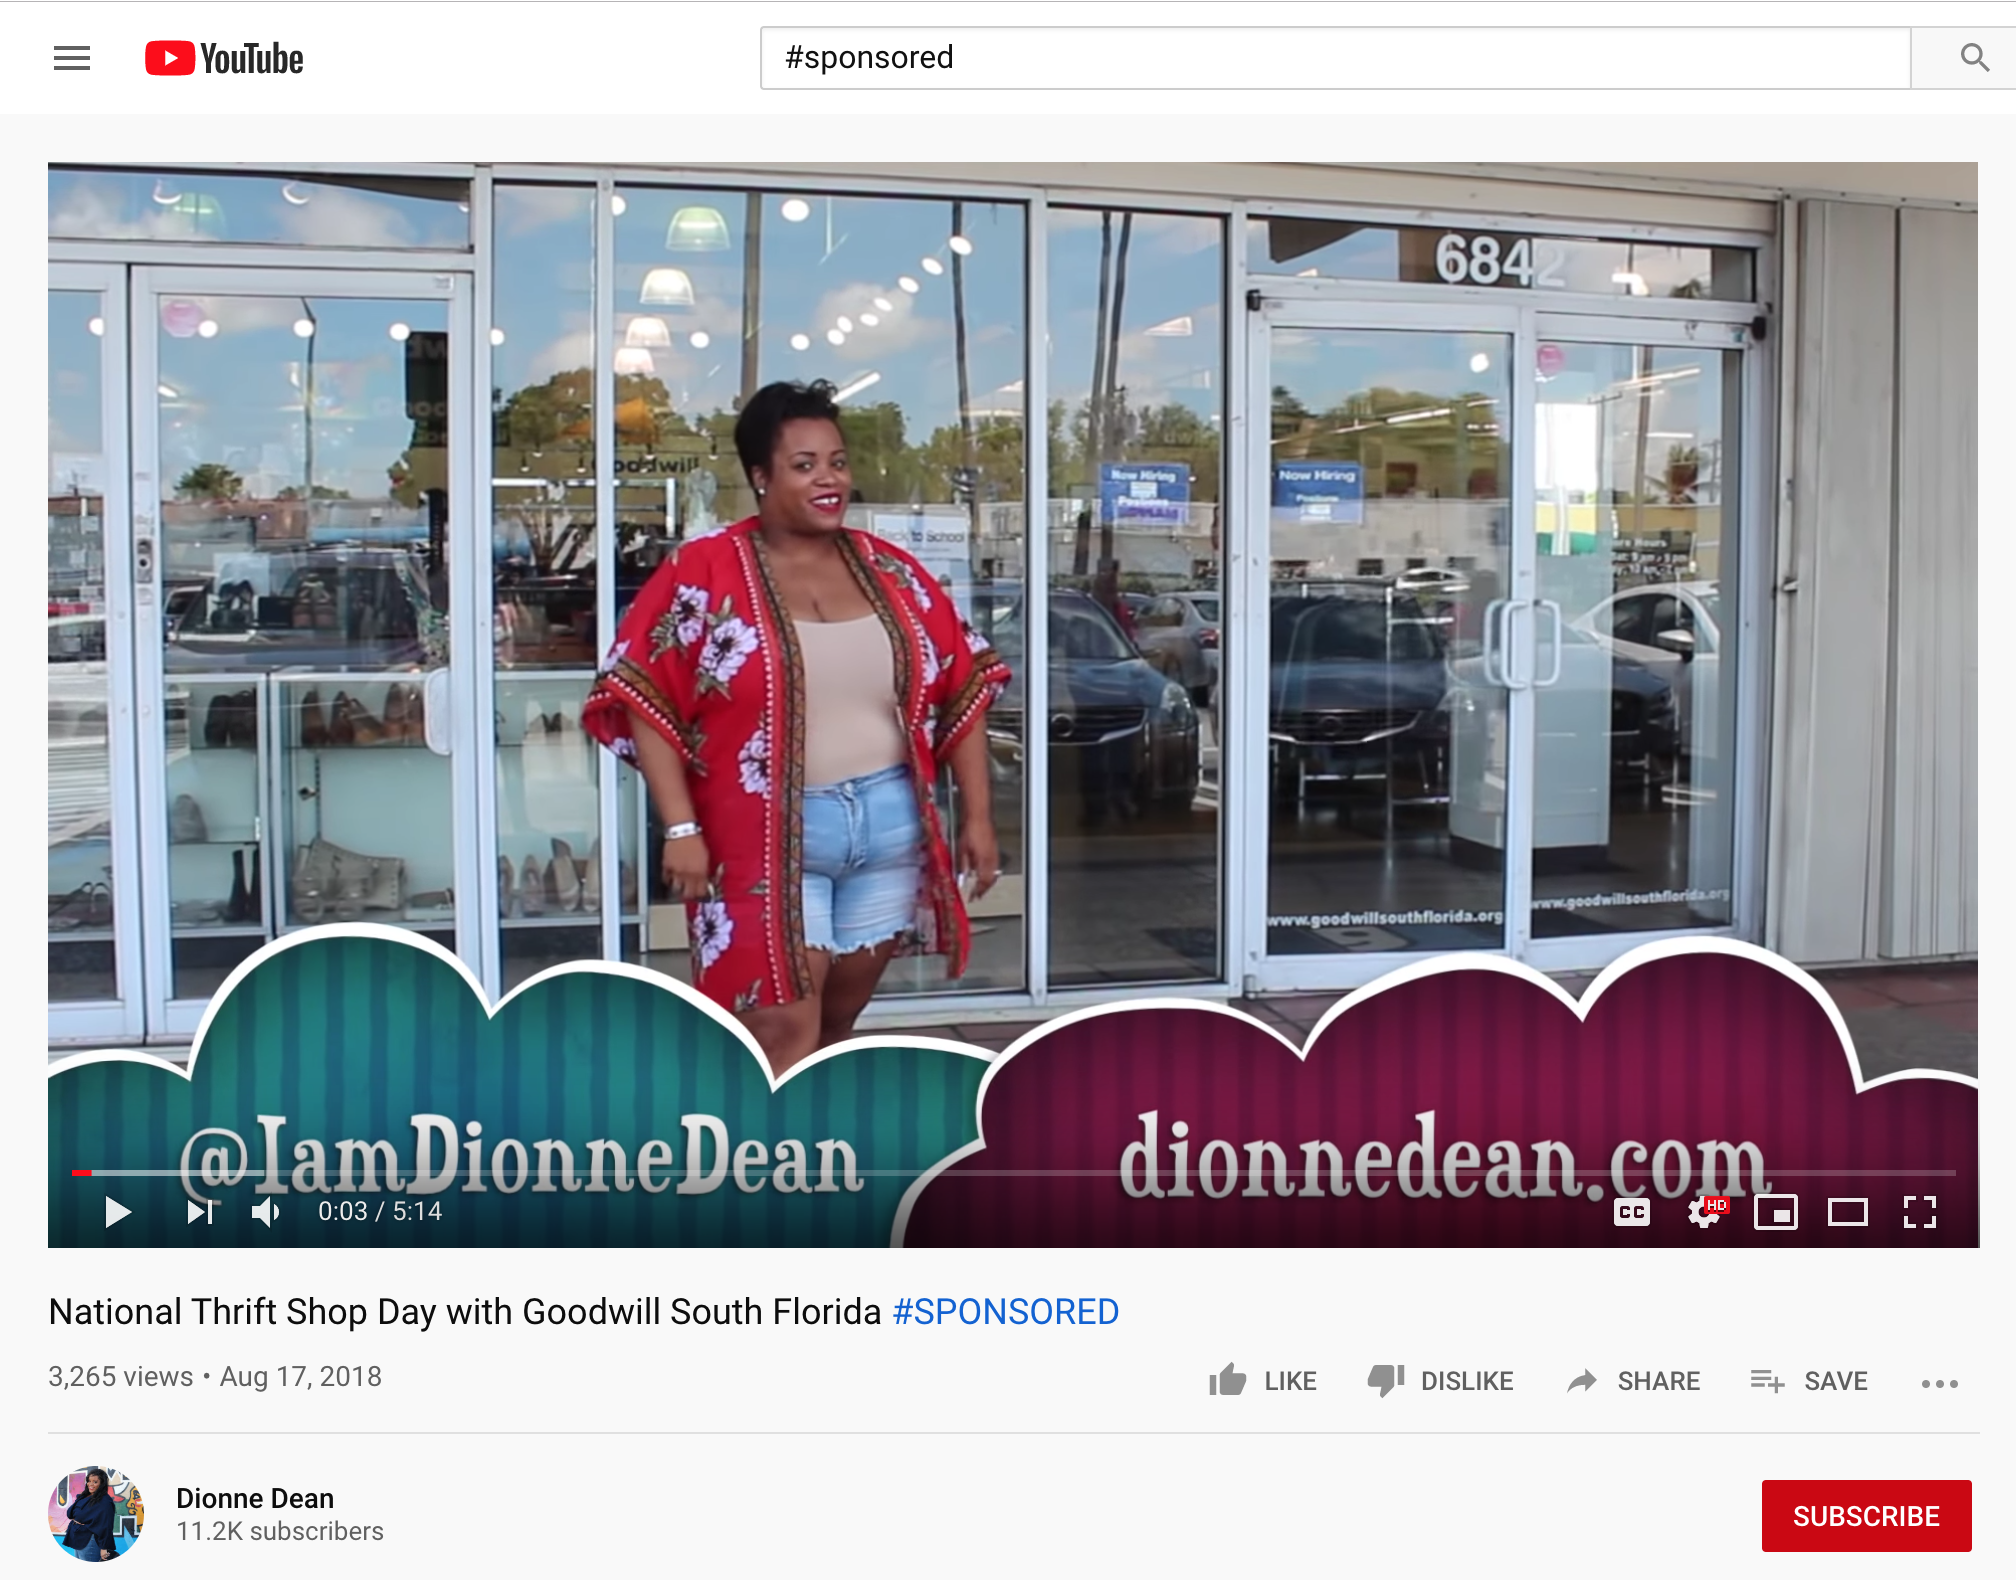 An example of a sponsored video collaboration between Dionne Dean and Goodwill - YouTube platform